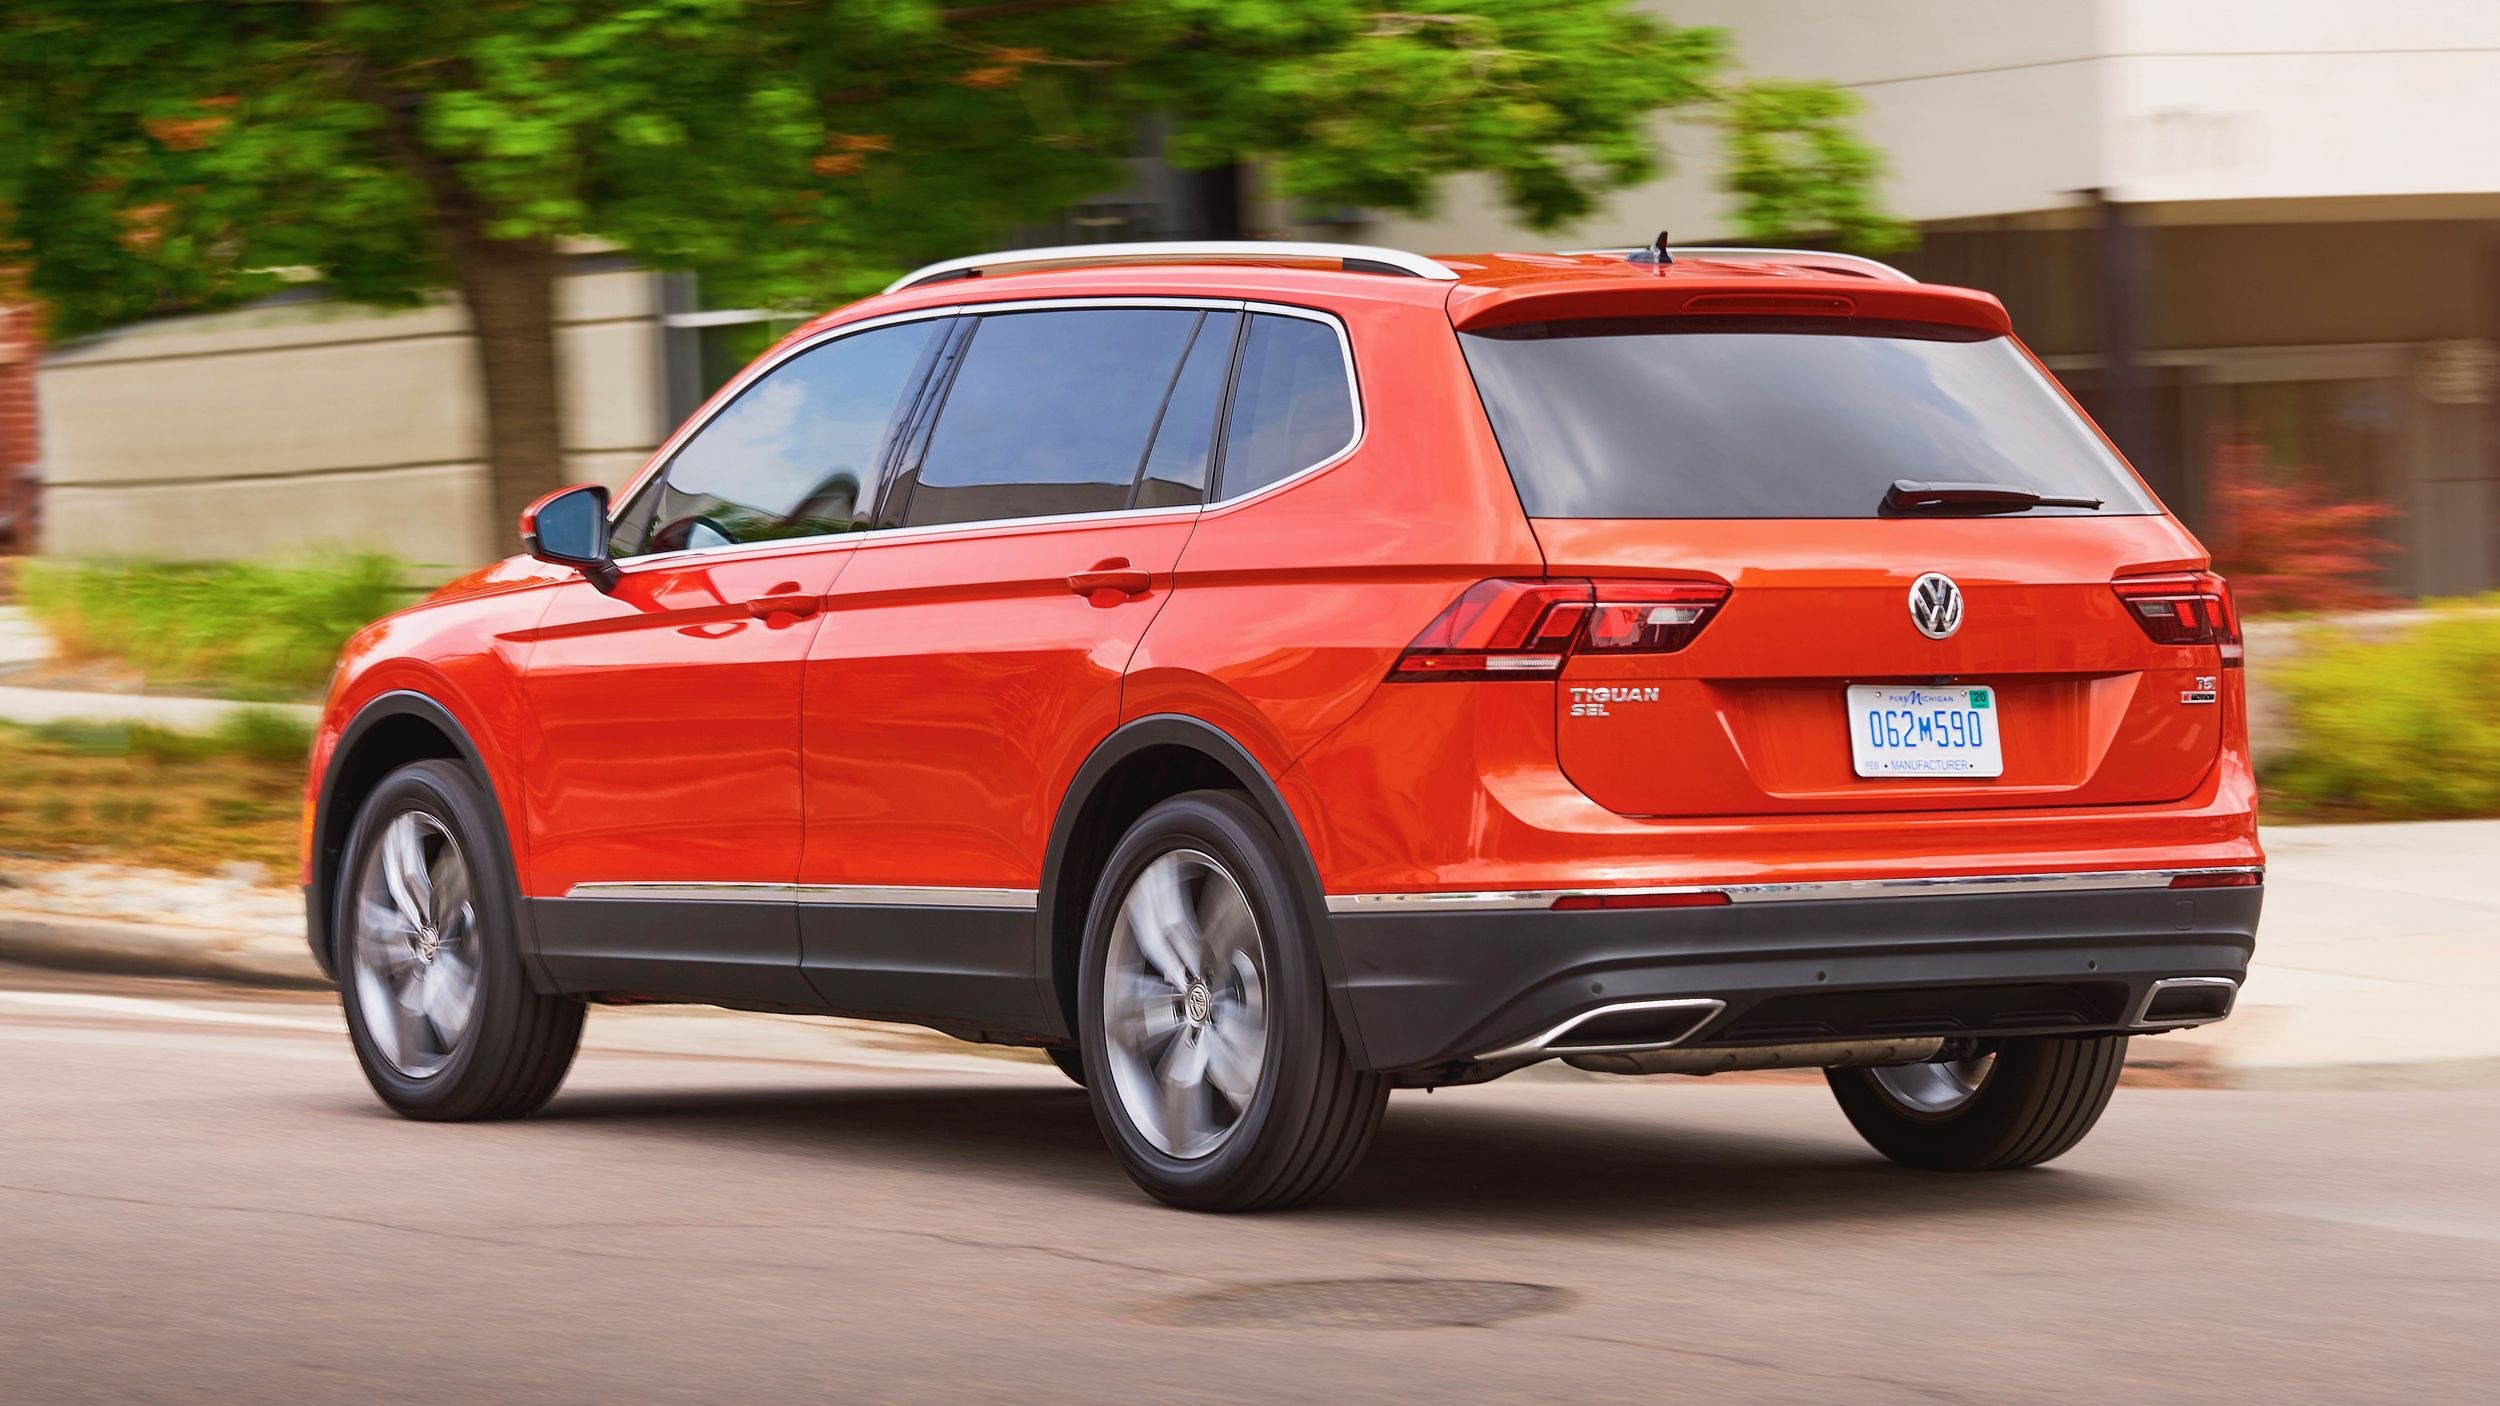 2019 VW Tiguan Reviews | Price, specs, features and photos ...